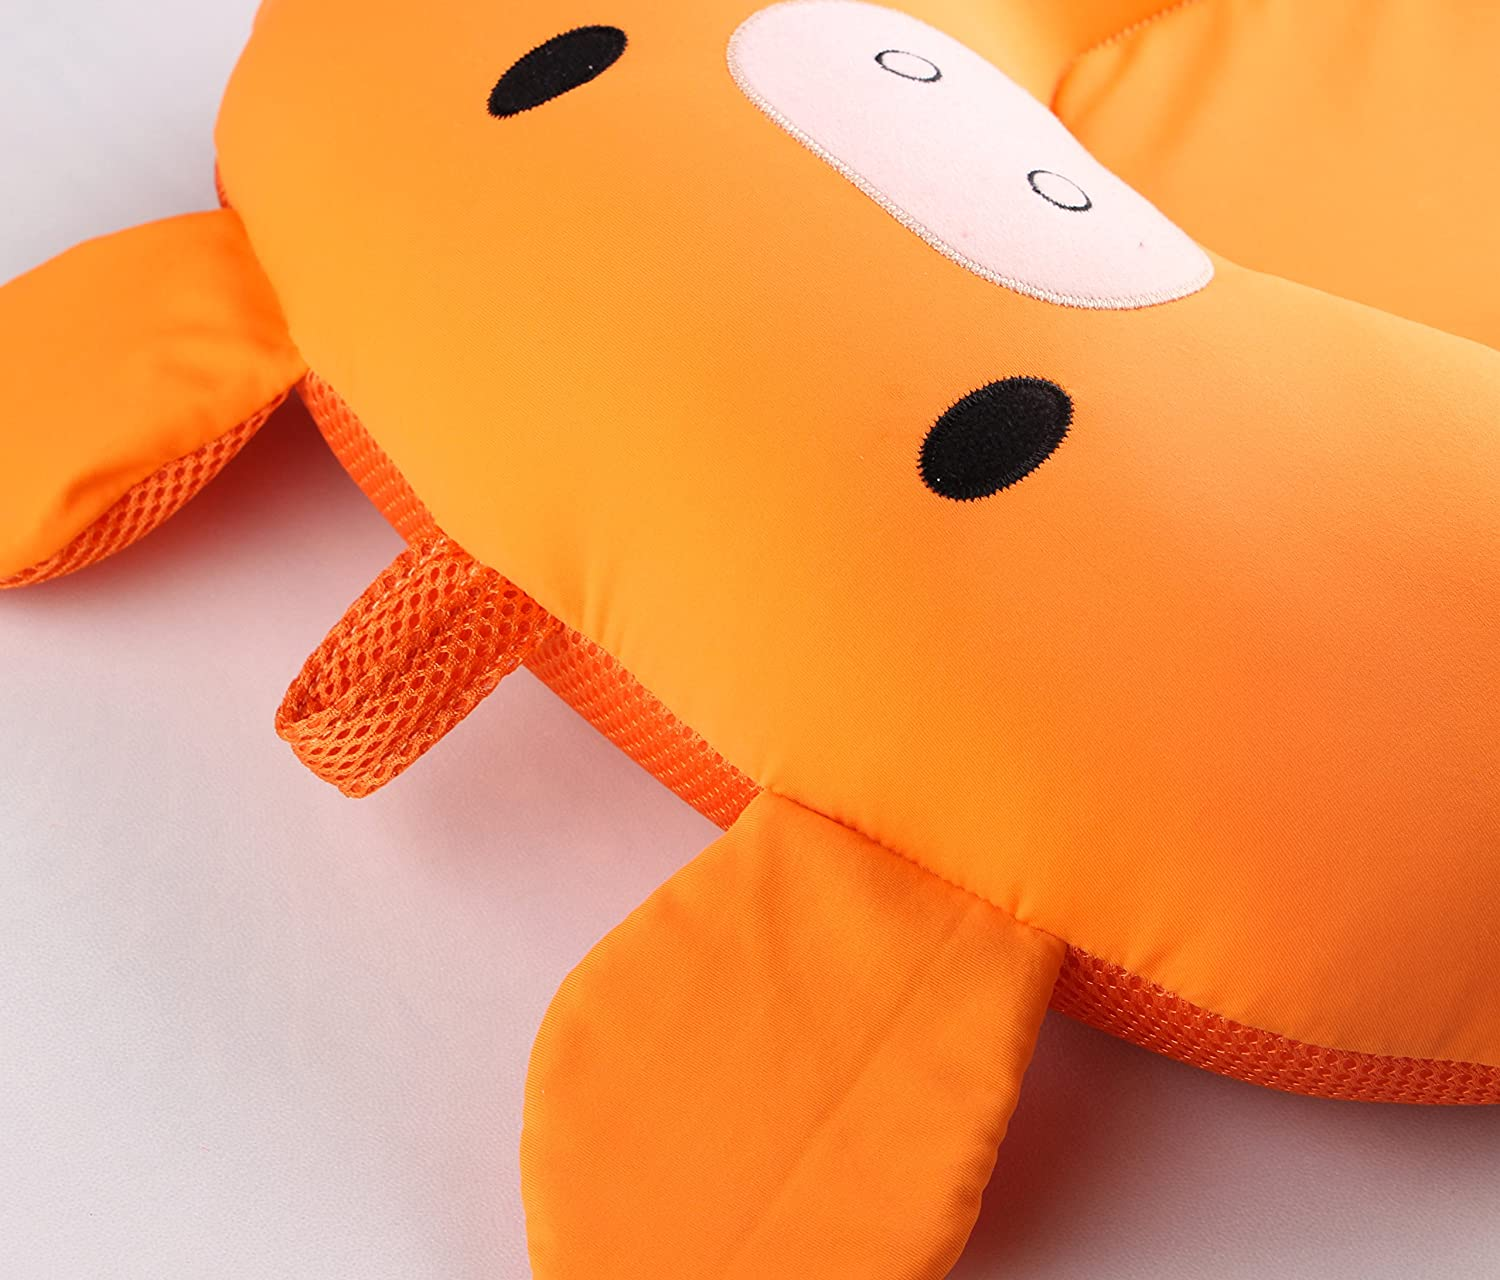 Floating Baby Bath Cushion Soft Bath Tub Support Pillow Pad for Baby Infant from 0-6 Month Orange Baby Bath Pillow